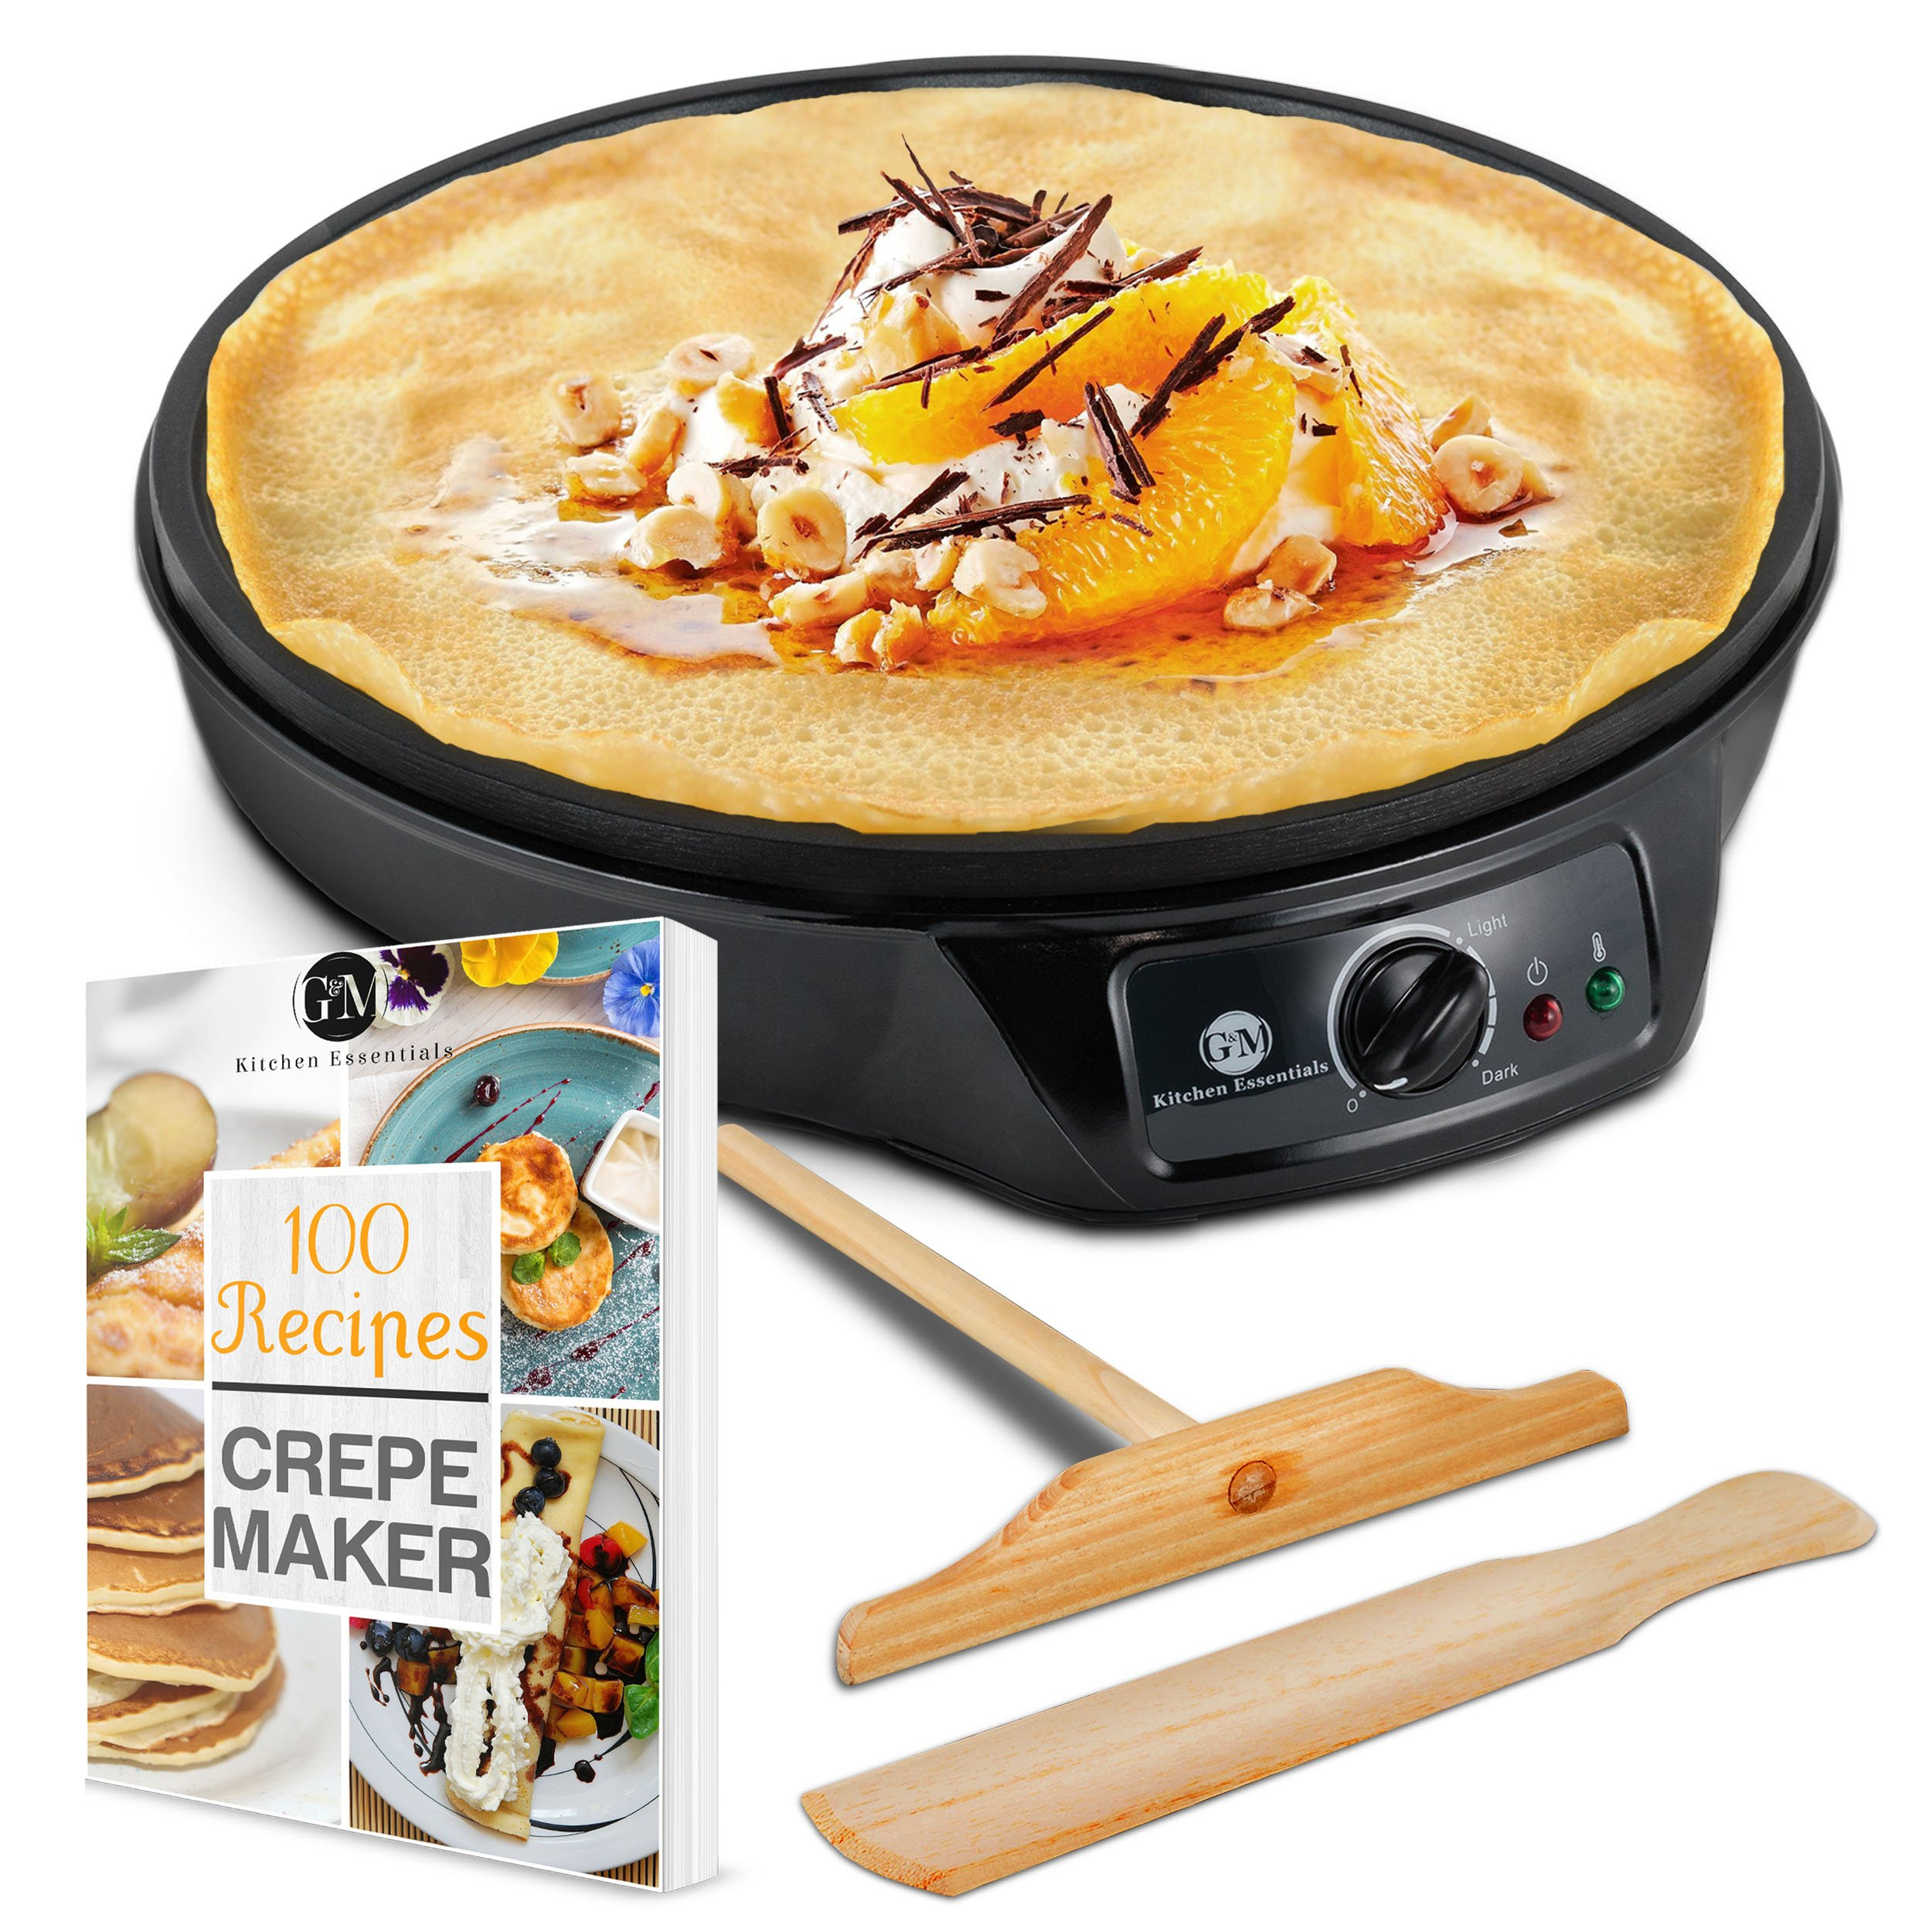 "Crepe Maker Machine Pancake Griddle – Nonstick 12"" Electric Griddle – BONUS 100 RECIPE COOKBOOK, Batter Spreader & Wooden Spatula – Pan for Roti, Tortilla, Blintzes – Portable, Compact, Easy Clean"